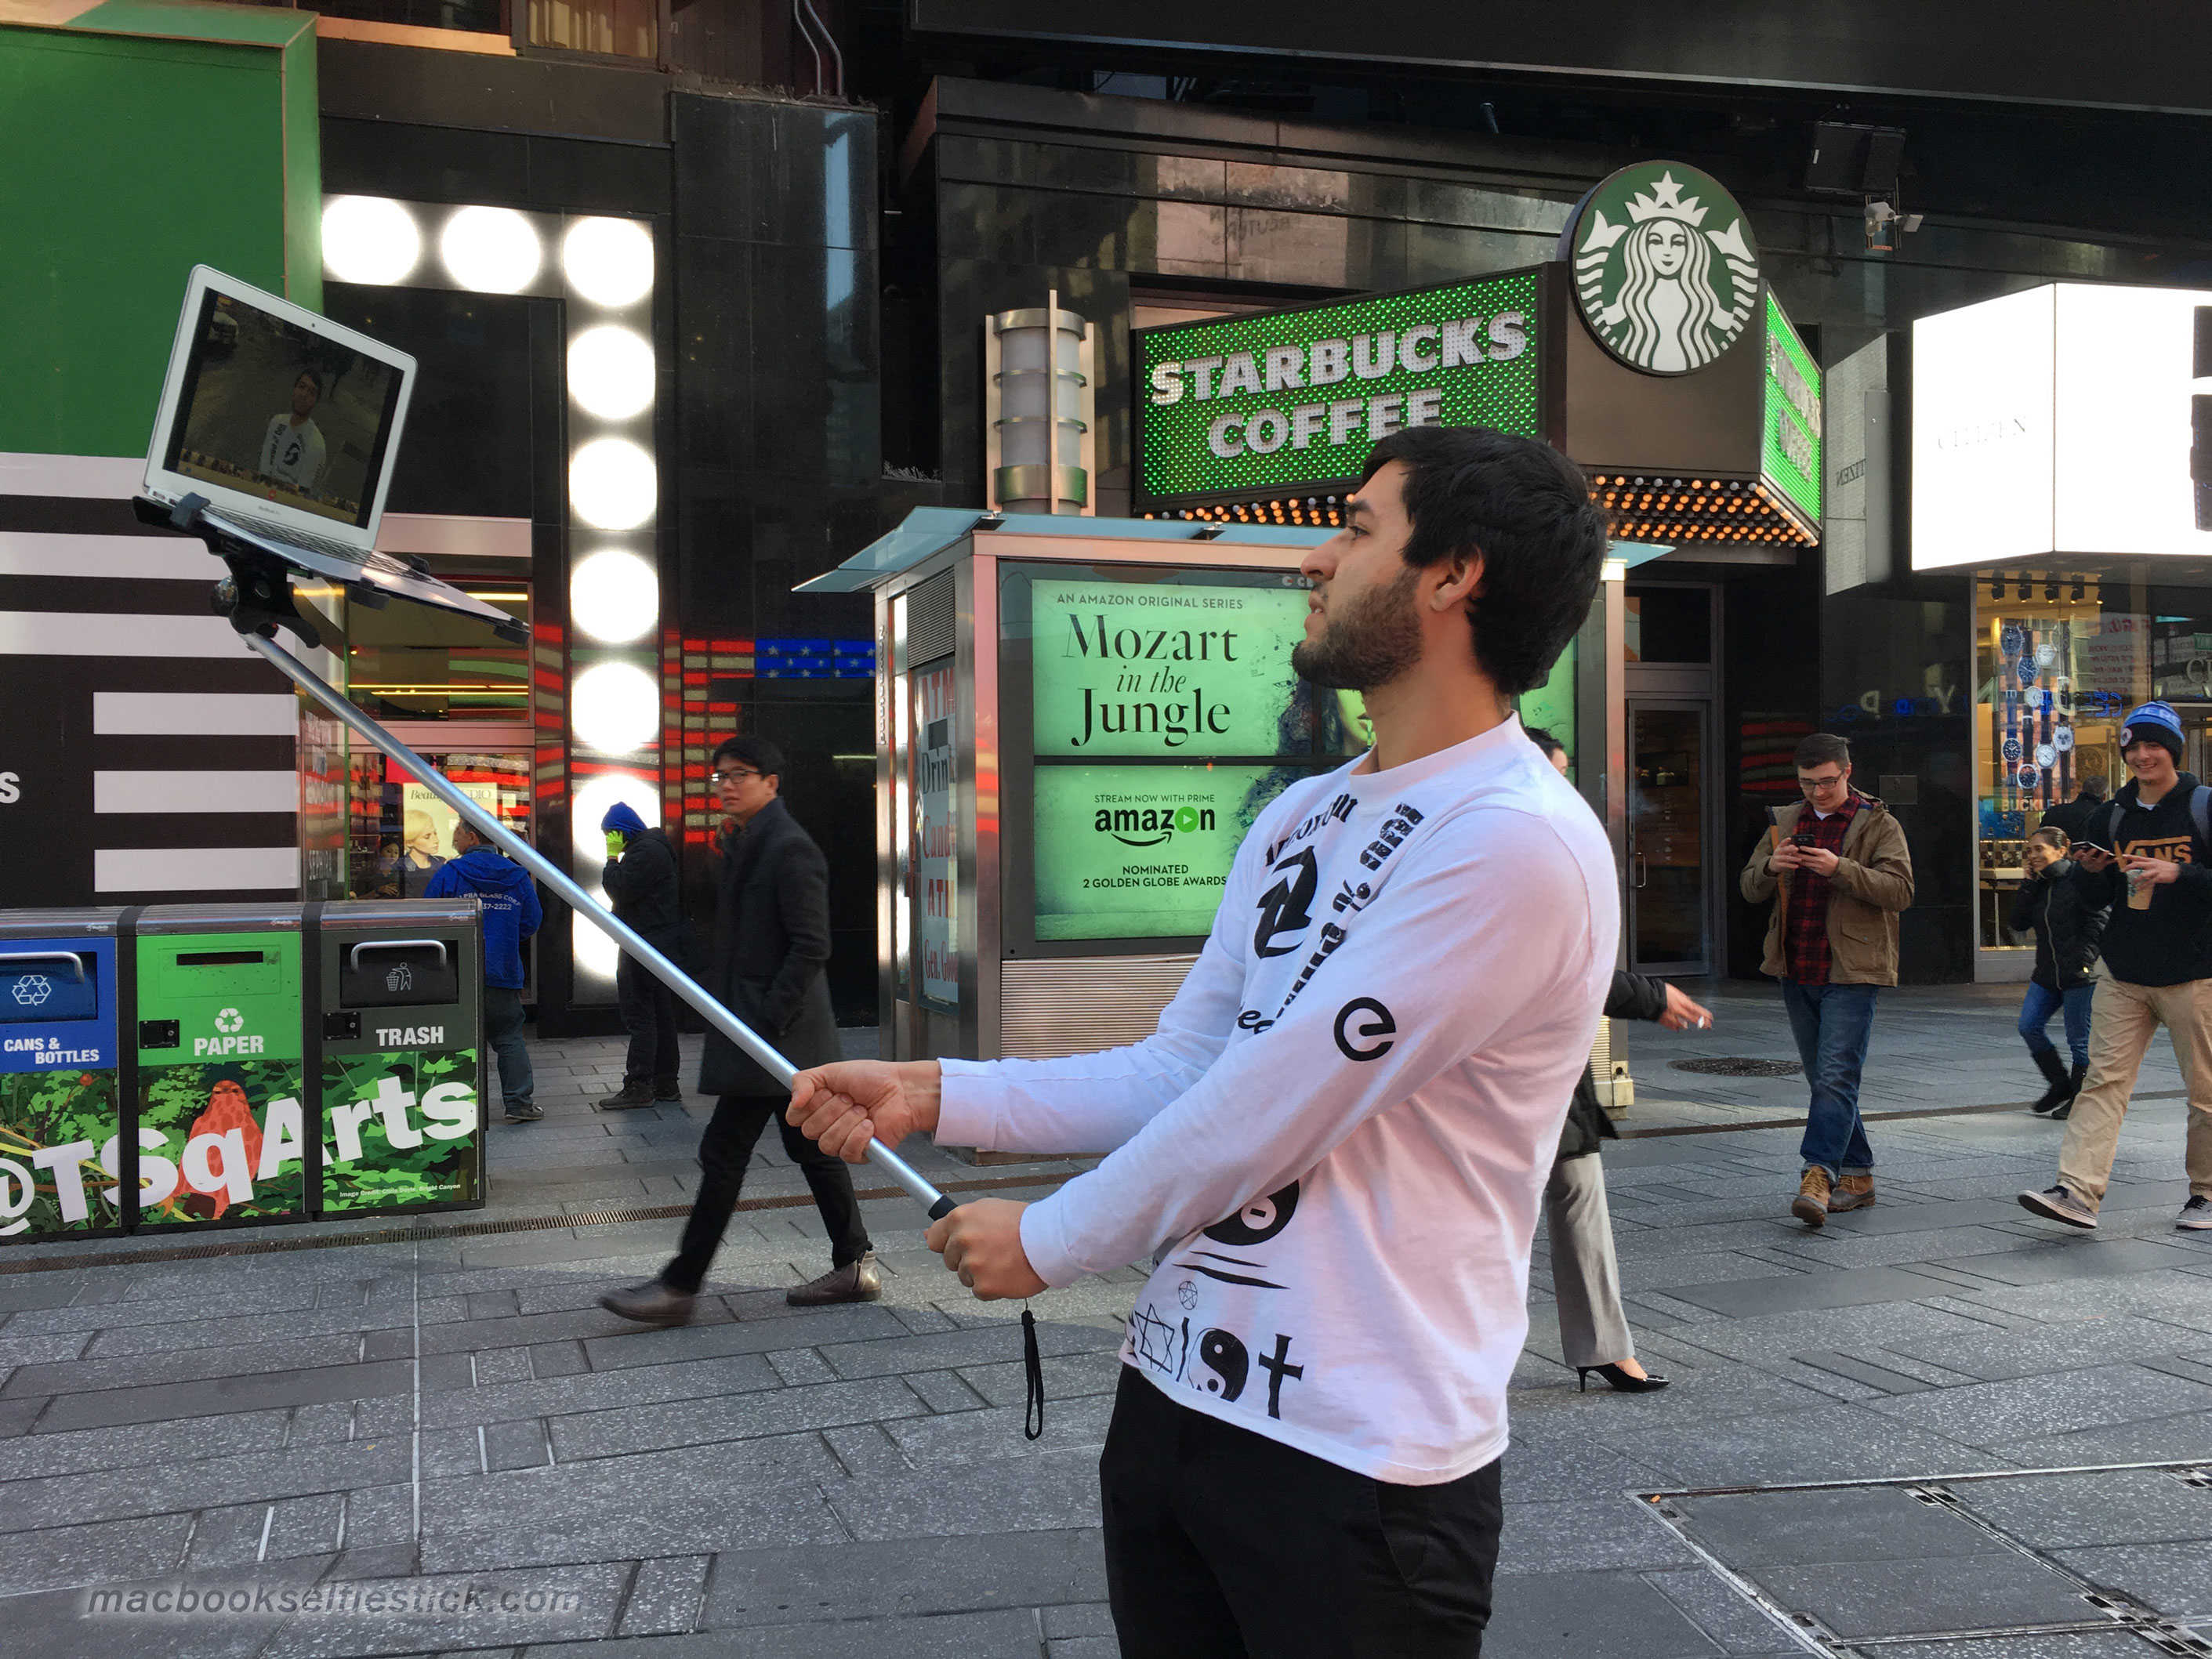 I'll take a double-shot half-caff soy latte with a side of massive MacBook selfie stick, please.